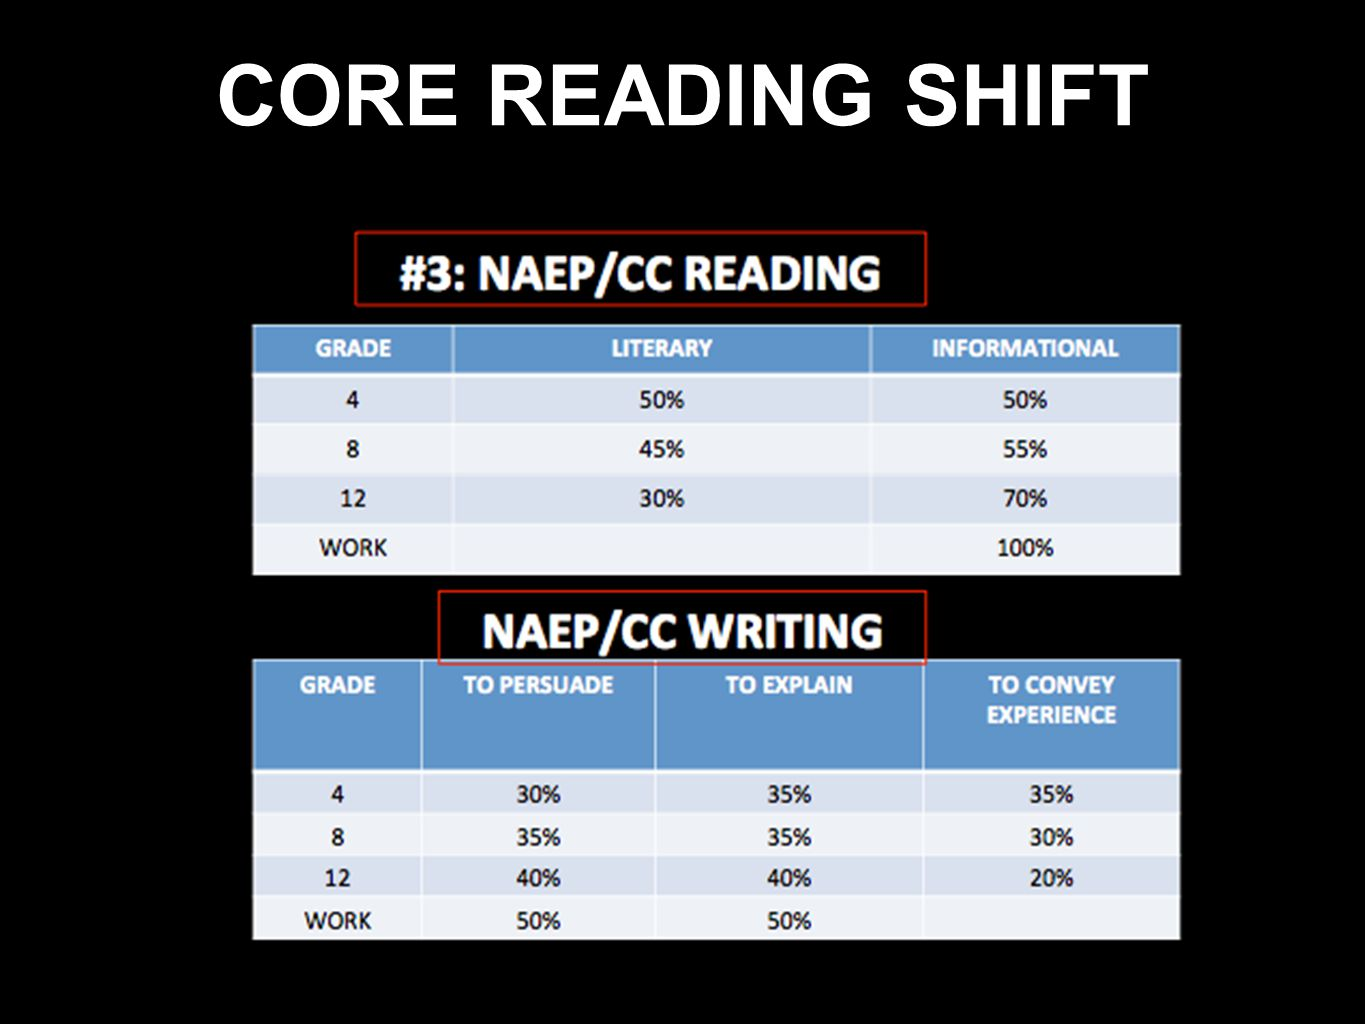 CORE READING SHIFT